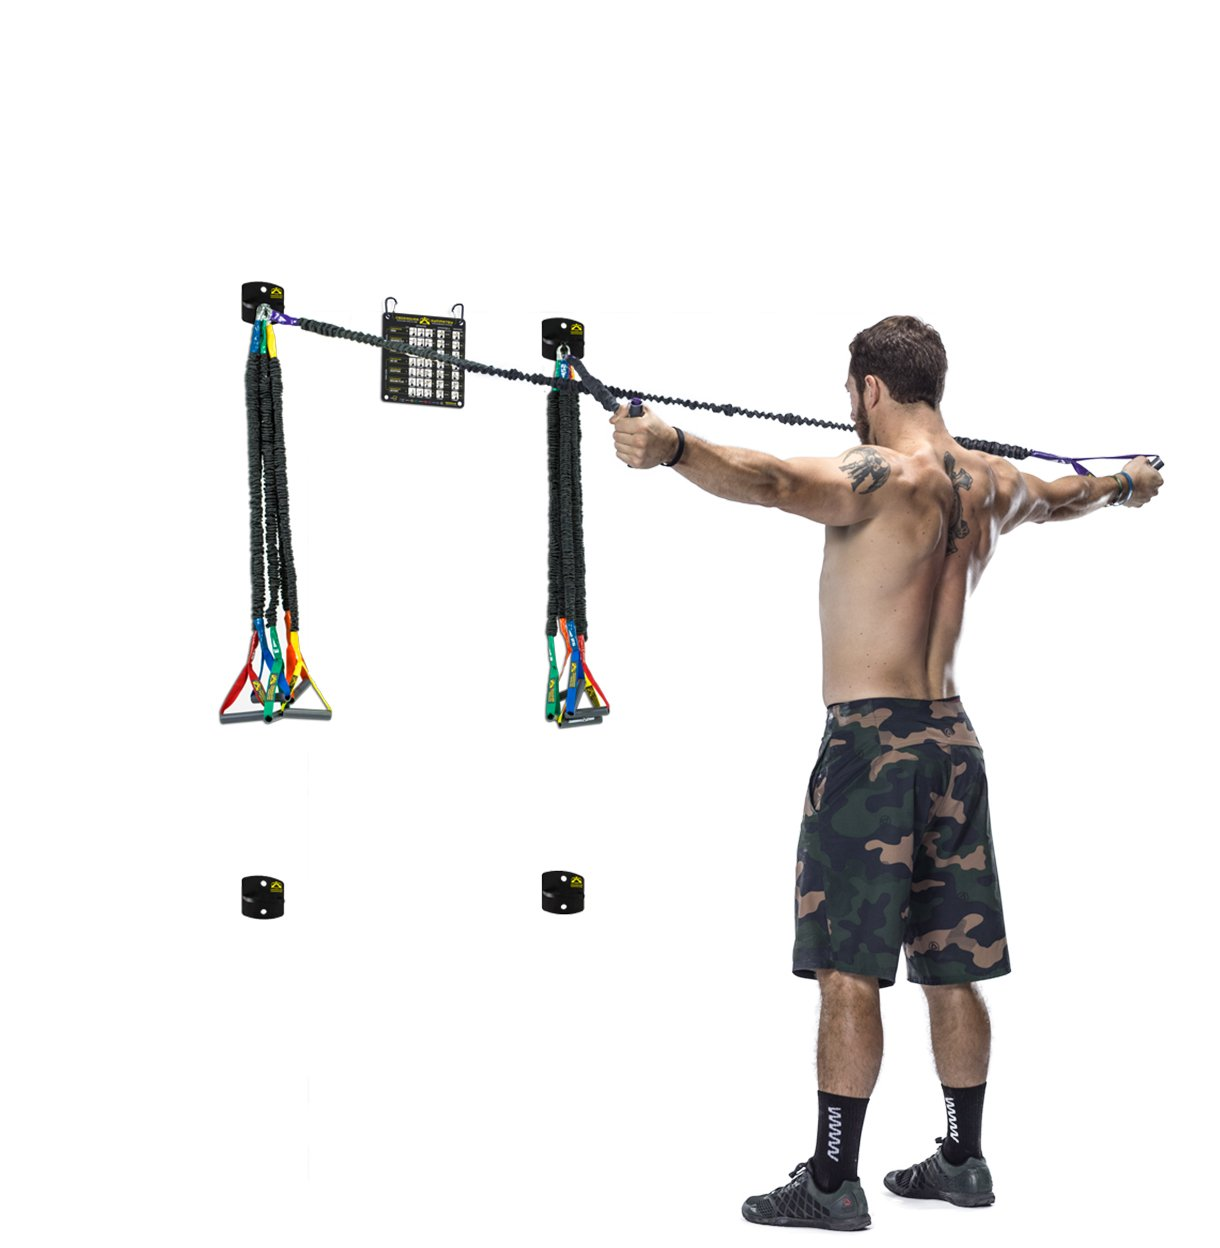 Wall Mount Attachment - Compatible with Crossover Cord Shoulder Resistance  Bands - Set of Four - Crossover Symmetry